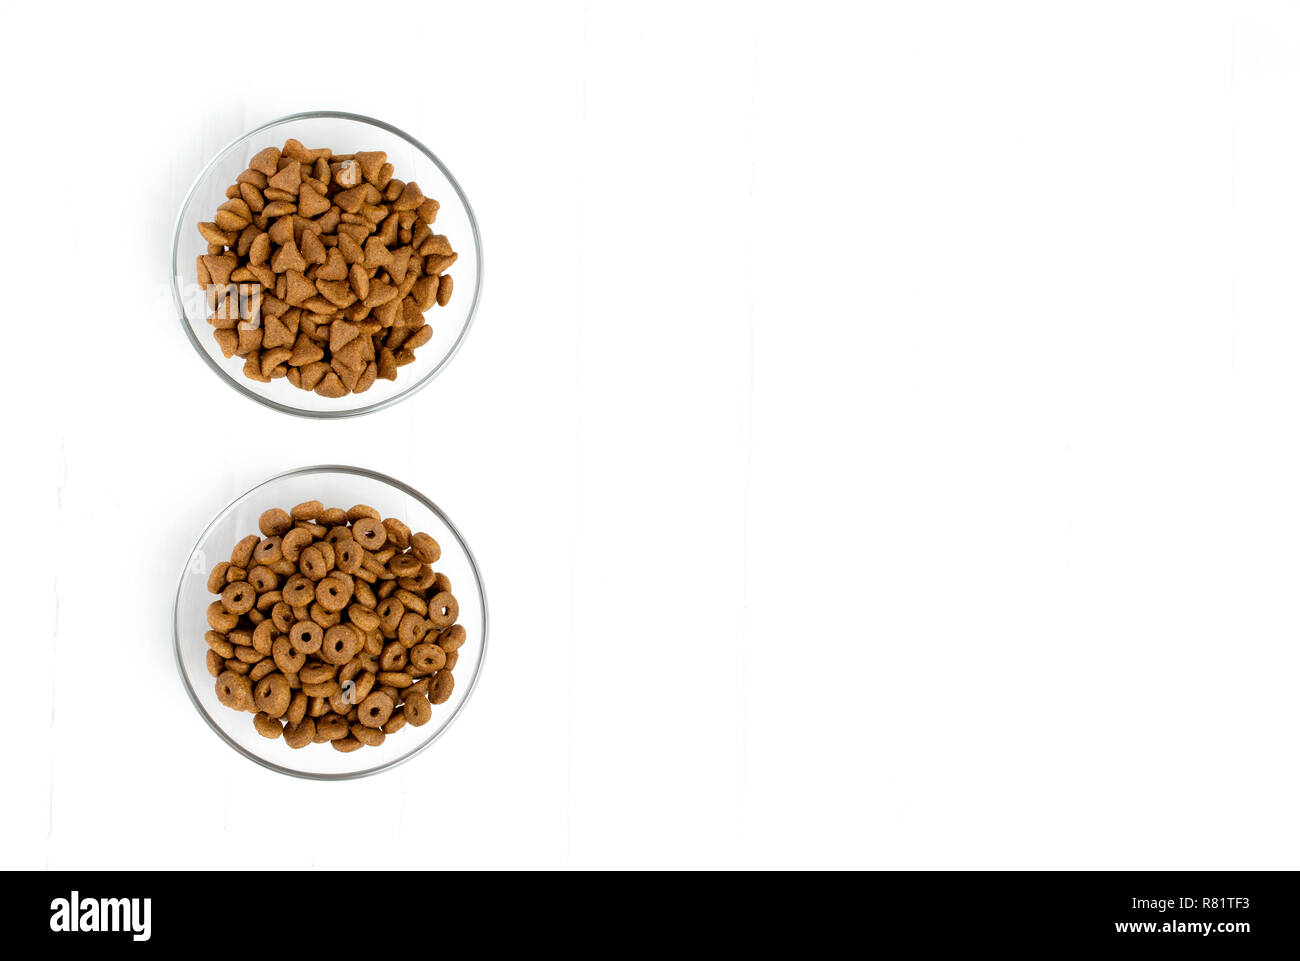 Dry cat food poured into a glass bowl on a white background Stock Photo